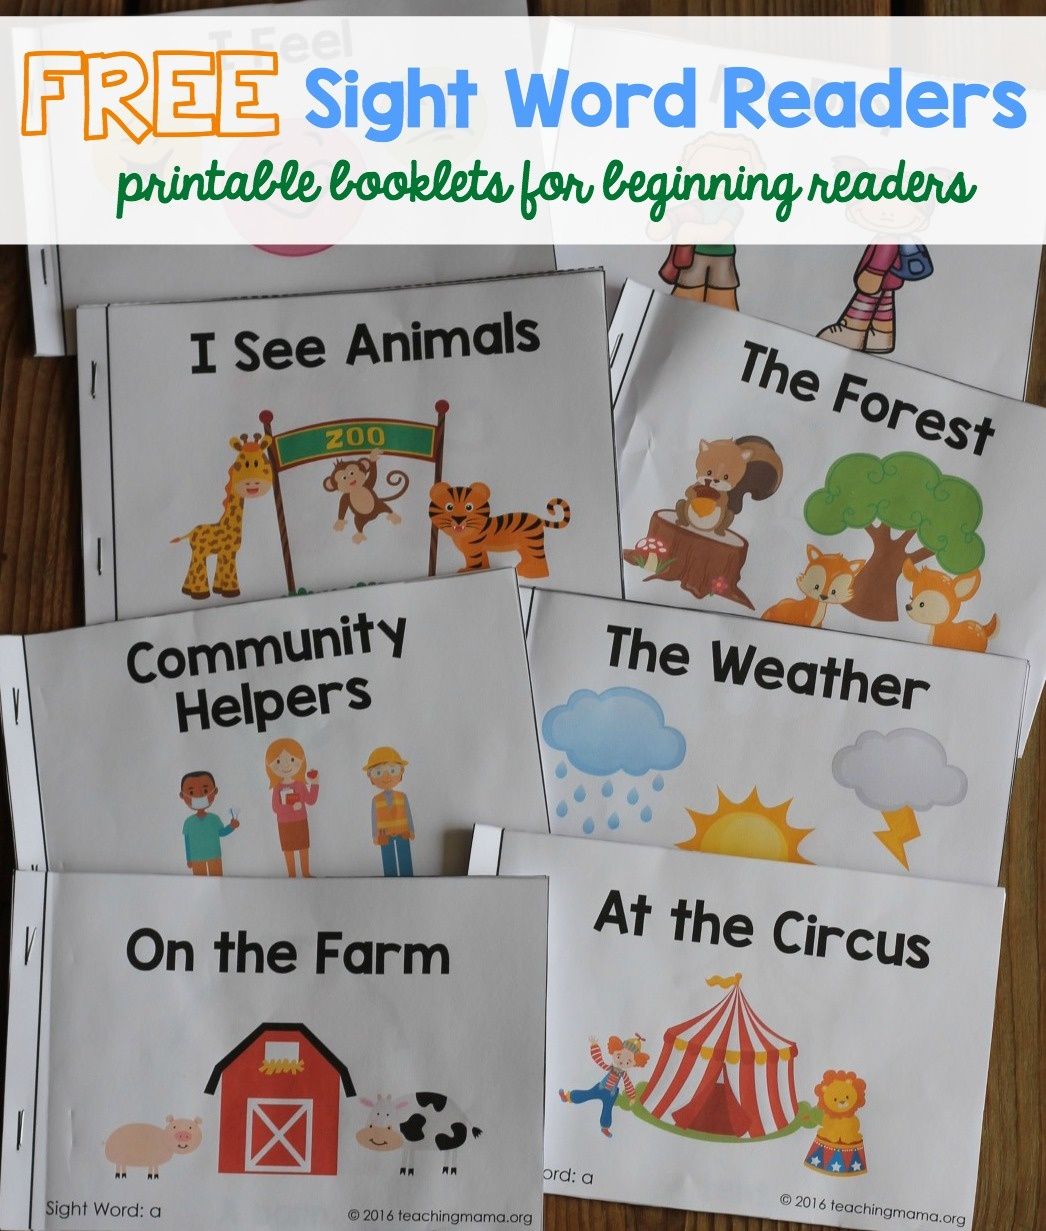 Sight Word Readers - Free Printable Books For Beginning Readers